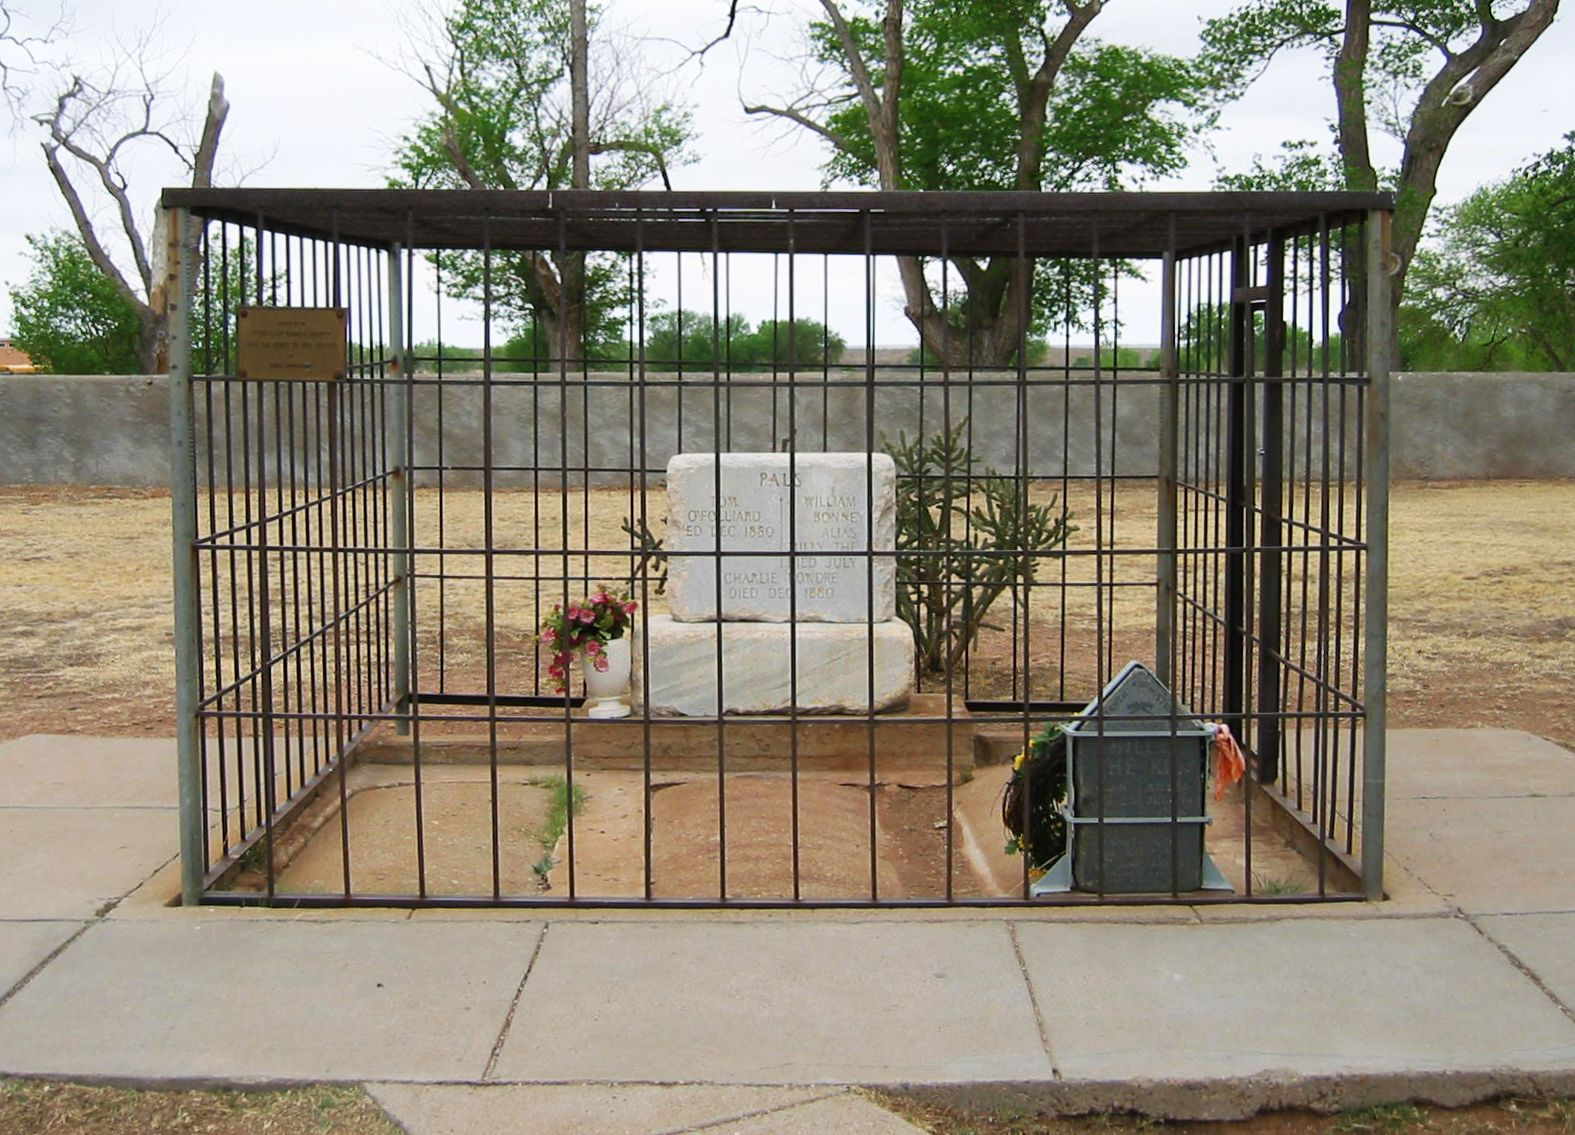 Finally caged in death: Billy the Kid is reportedly buried under a tombstone at the Old Fort Sumner Cemetery is enclosed behind iron bars to prevent it being stolen for a third time.  Photo by Sam Vast.